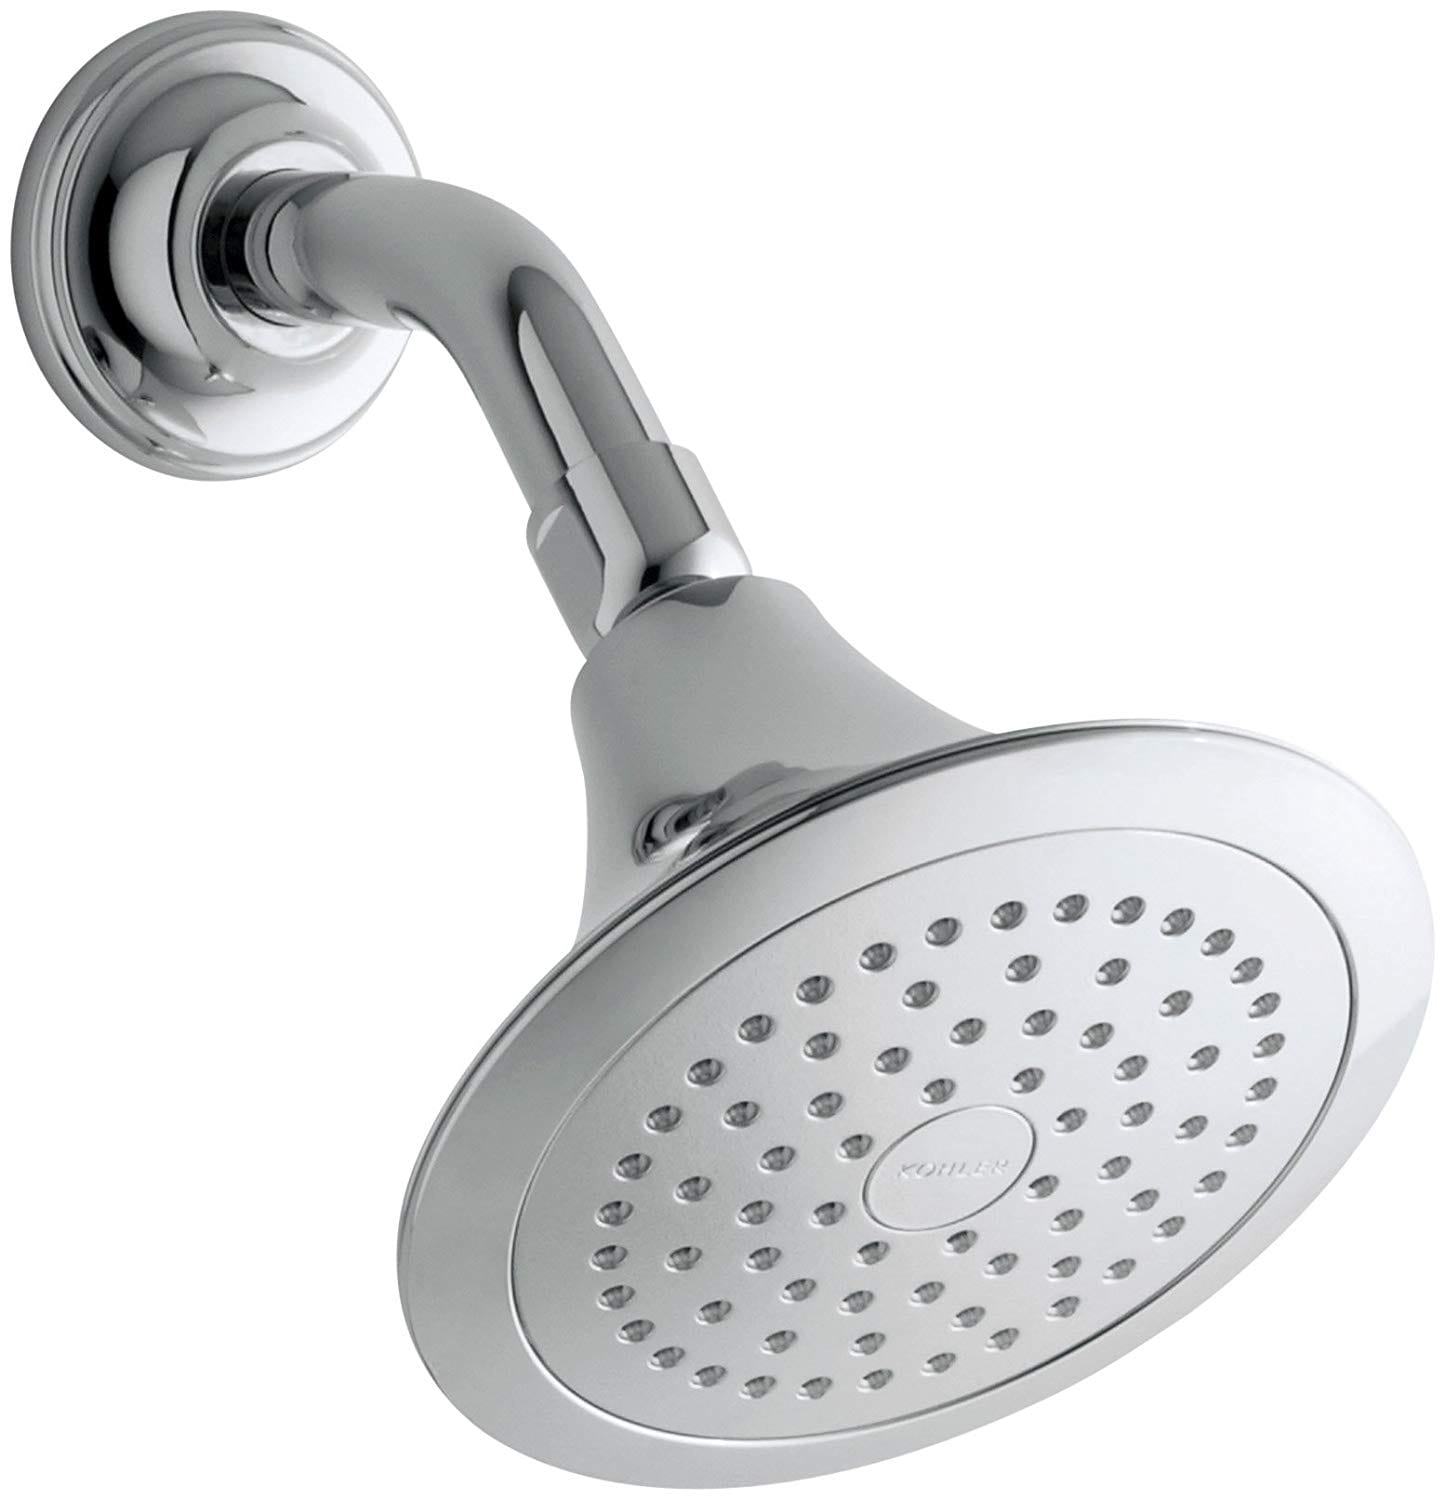 Top 10 Best Kohler Shower Heads In 2019 Reviews Buyer S